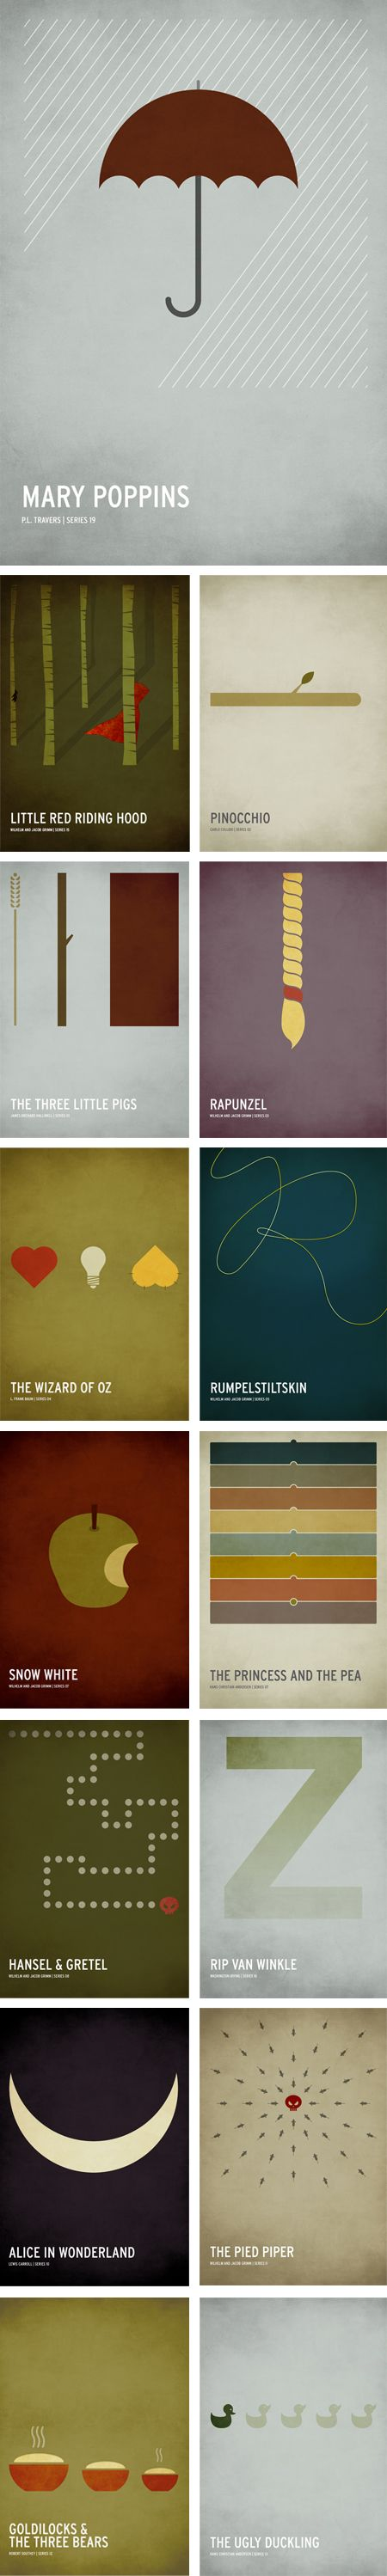 Poster design pinterest - Find This Pin And More On Minimalist Design Poster By Graficale